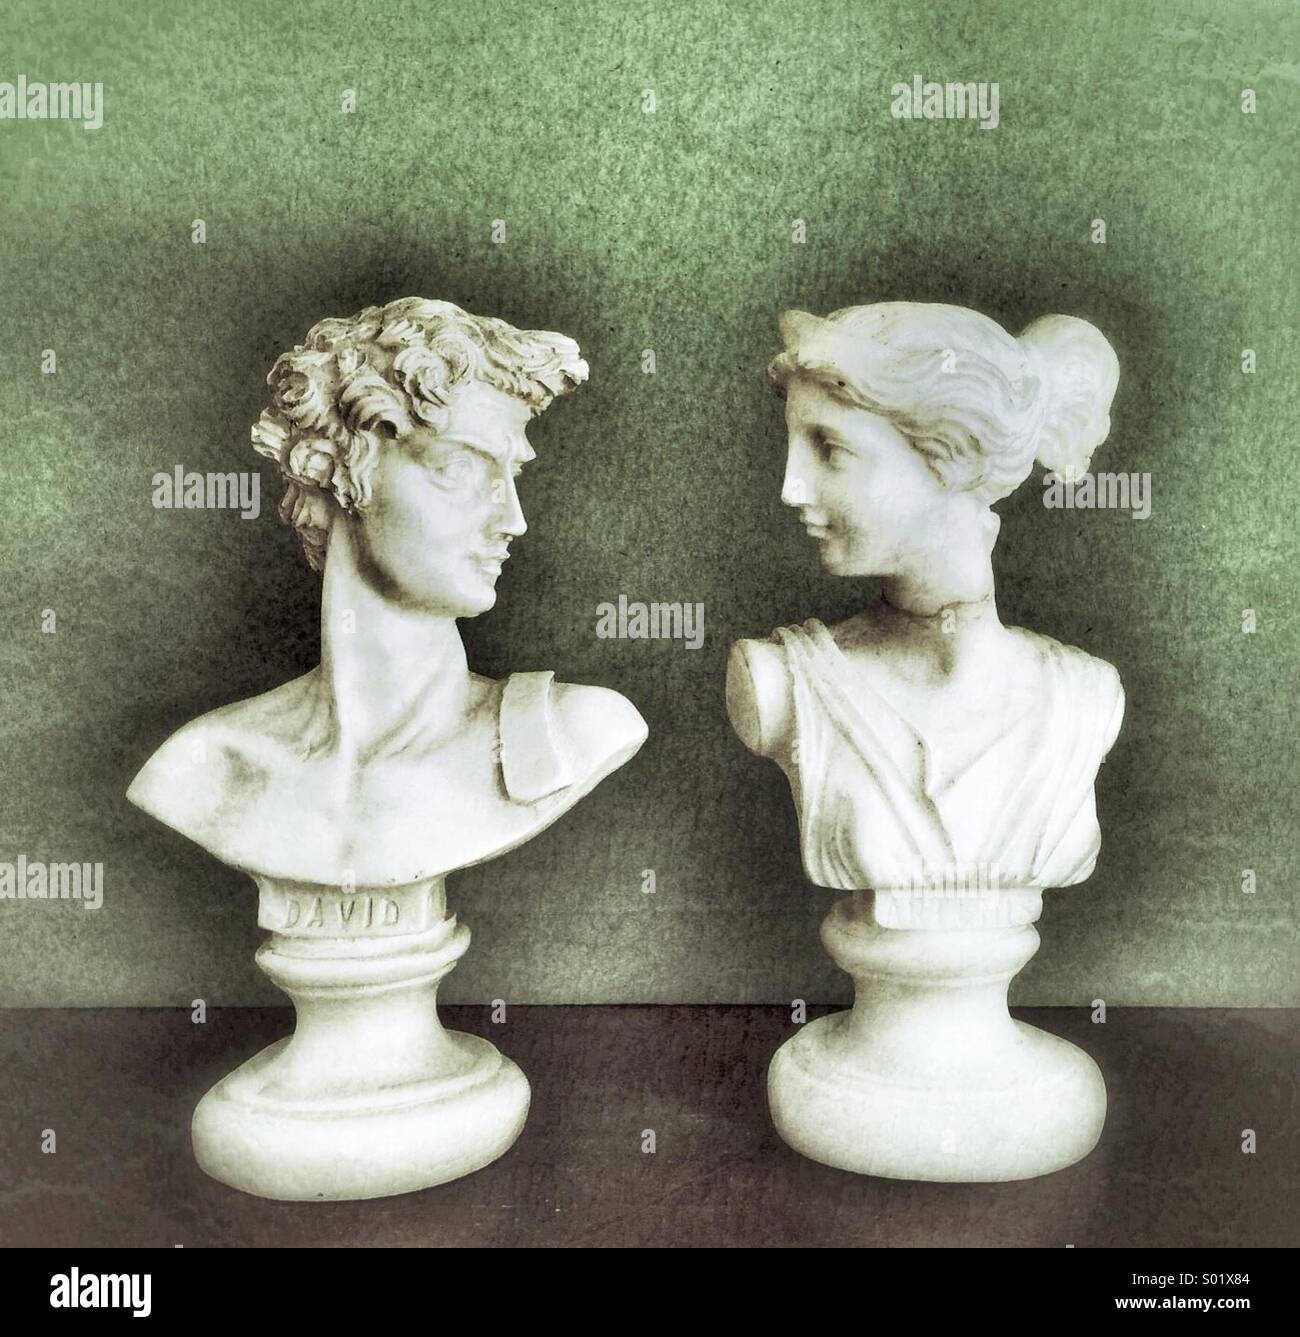 Happy couple of statues, man and woman concept - Stock Image